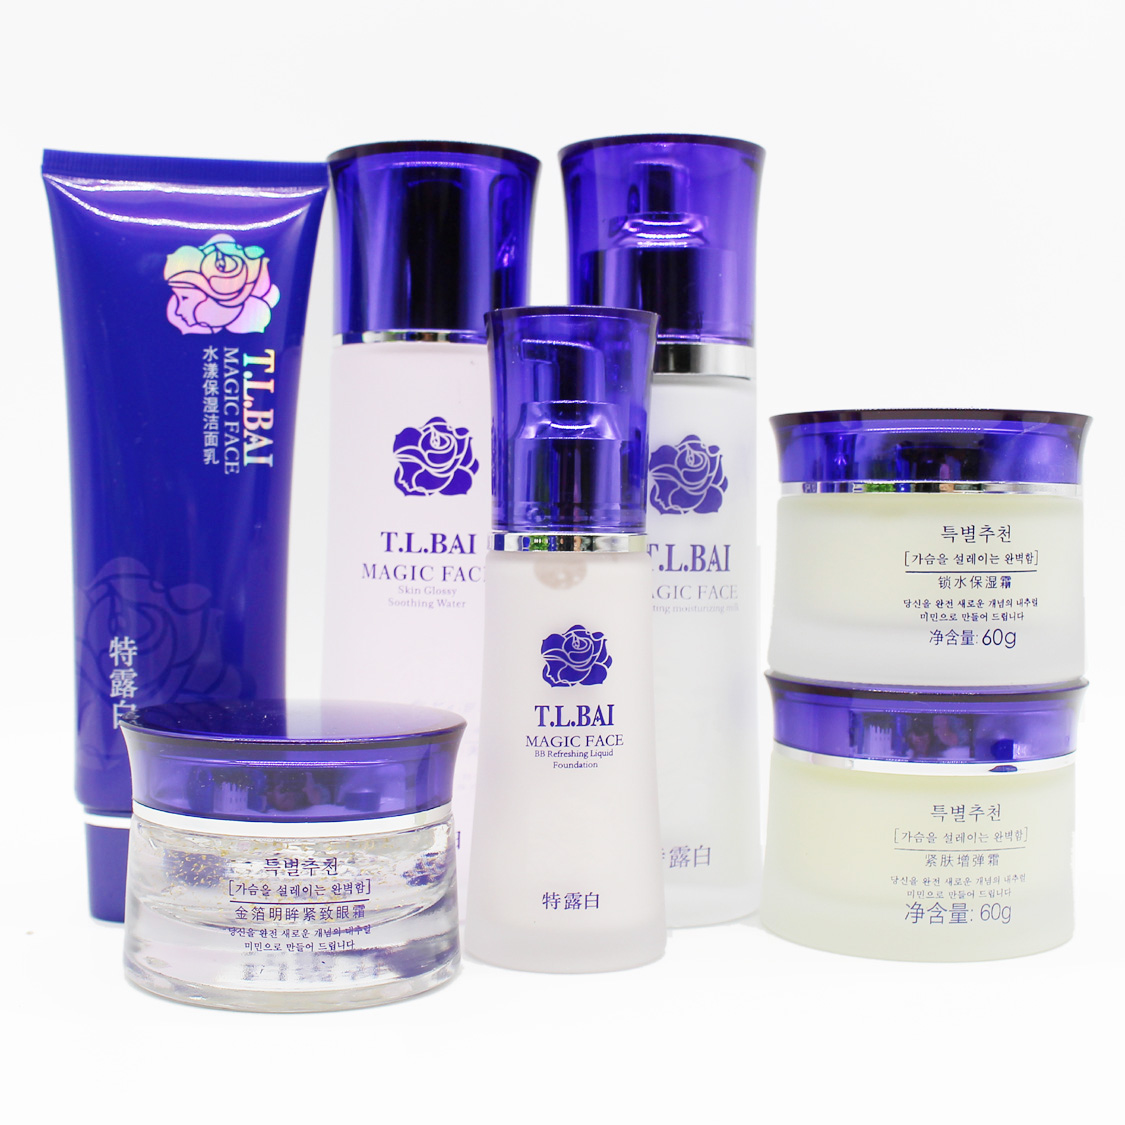 USD 9.37] Telu white magic white cosmetics set water moisturizing bright  surface milk cream foundation water skin care skin care women - Wholesale  from China online shopping | Buy asian products online